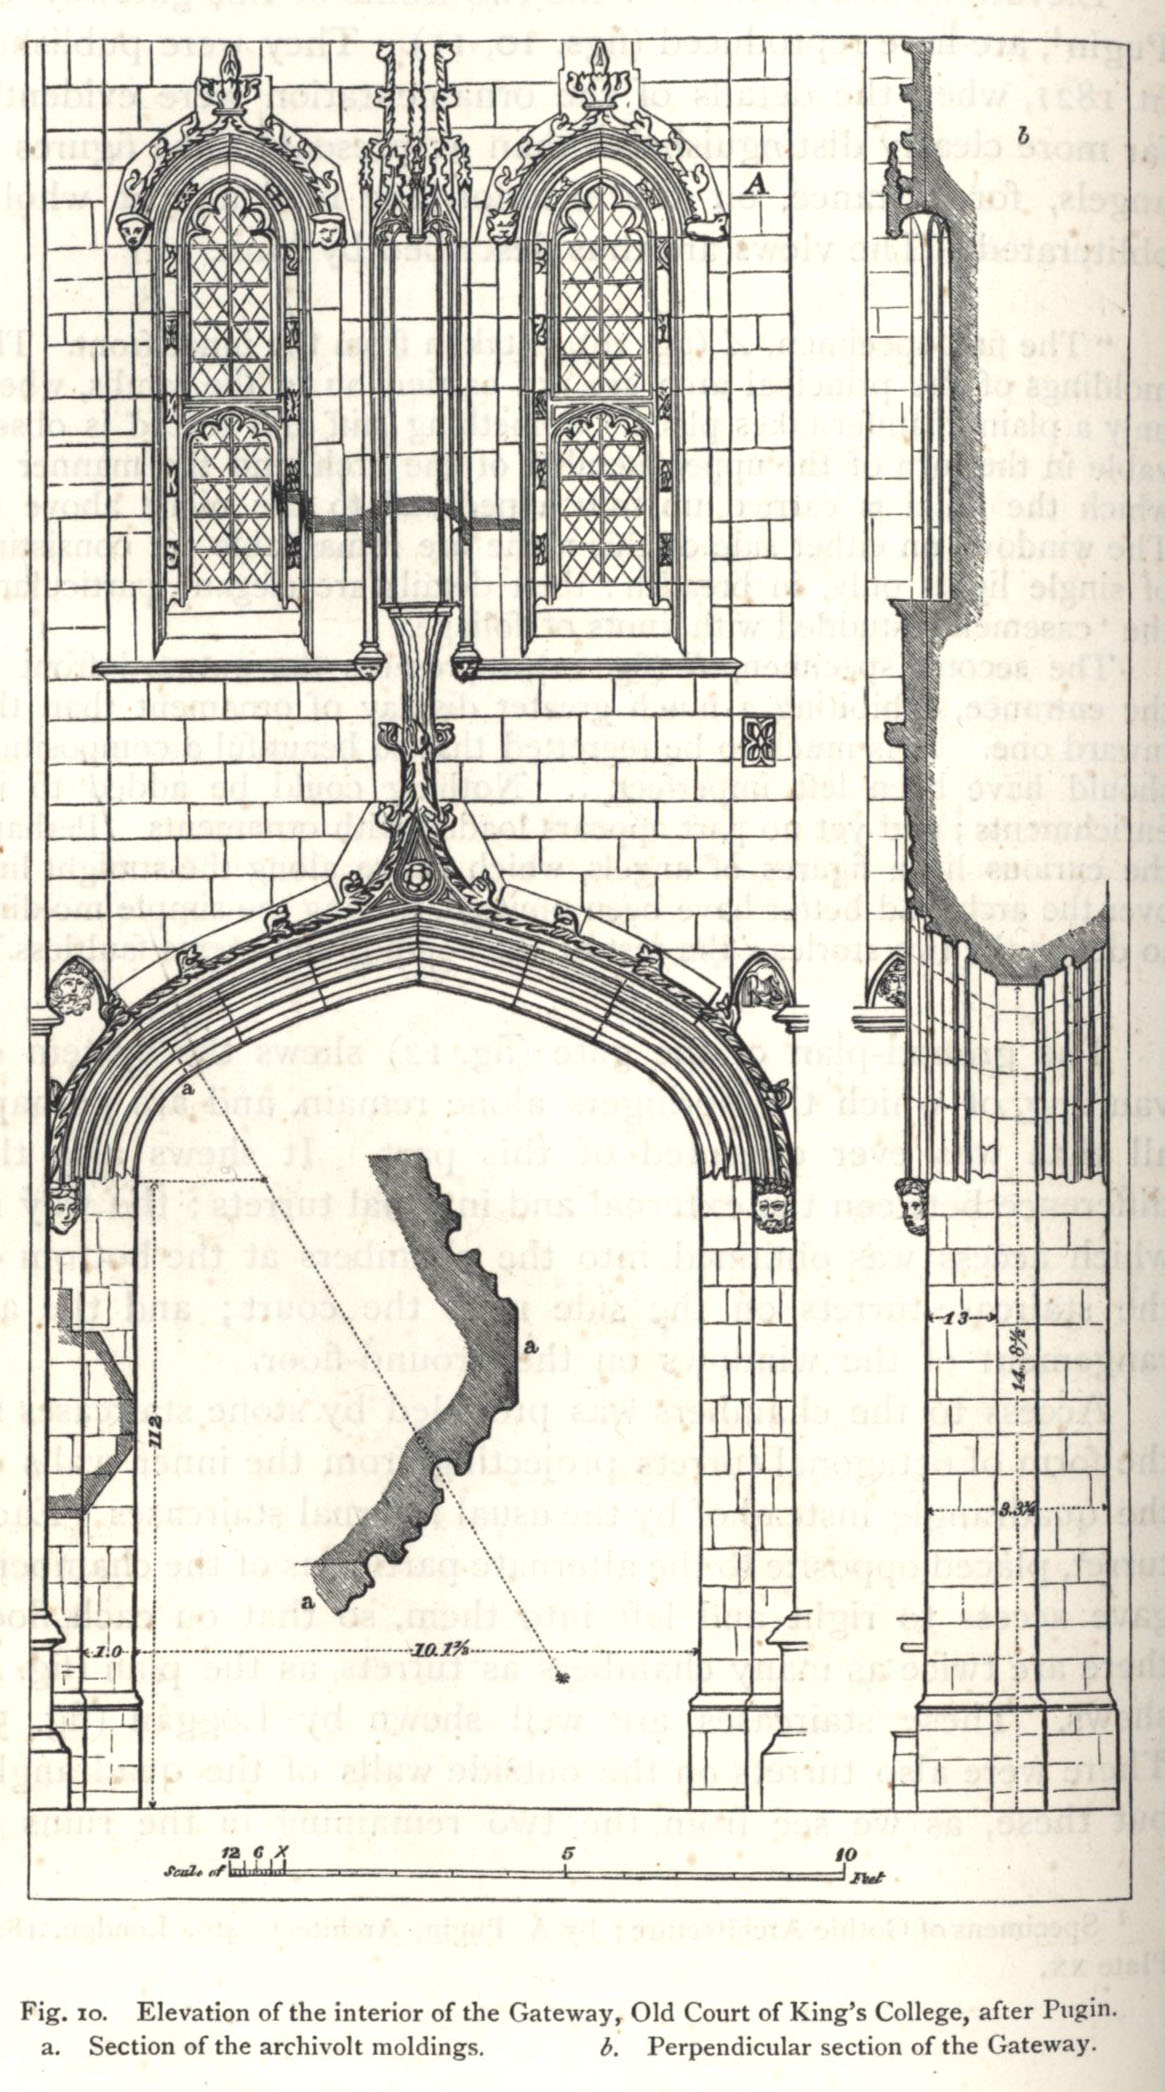 Elevation of the interior of the Gateway, Old Court, after Pugin. [Willis and Clark, vol. 1, p. 328, fig. 10]